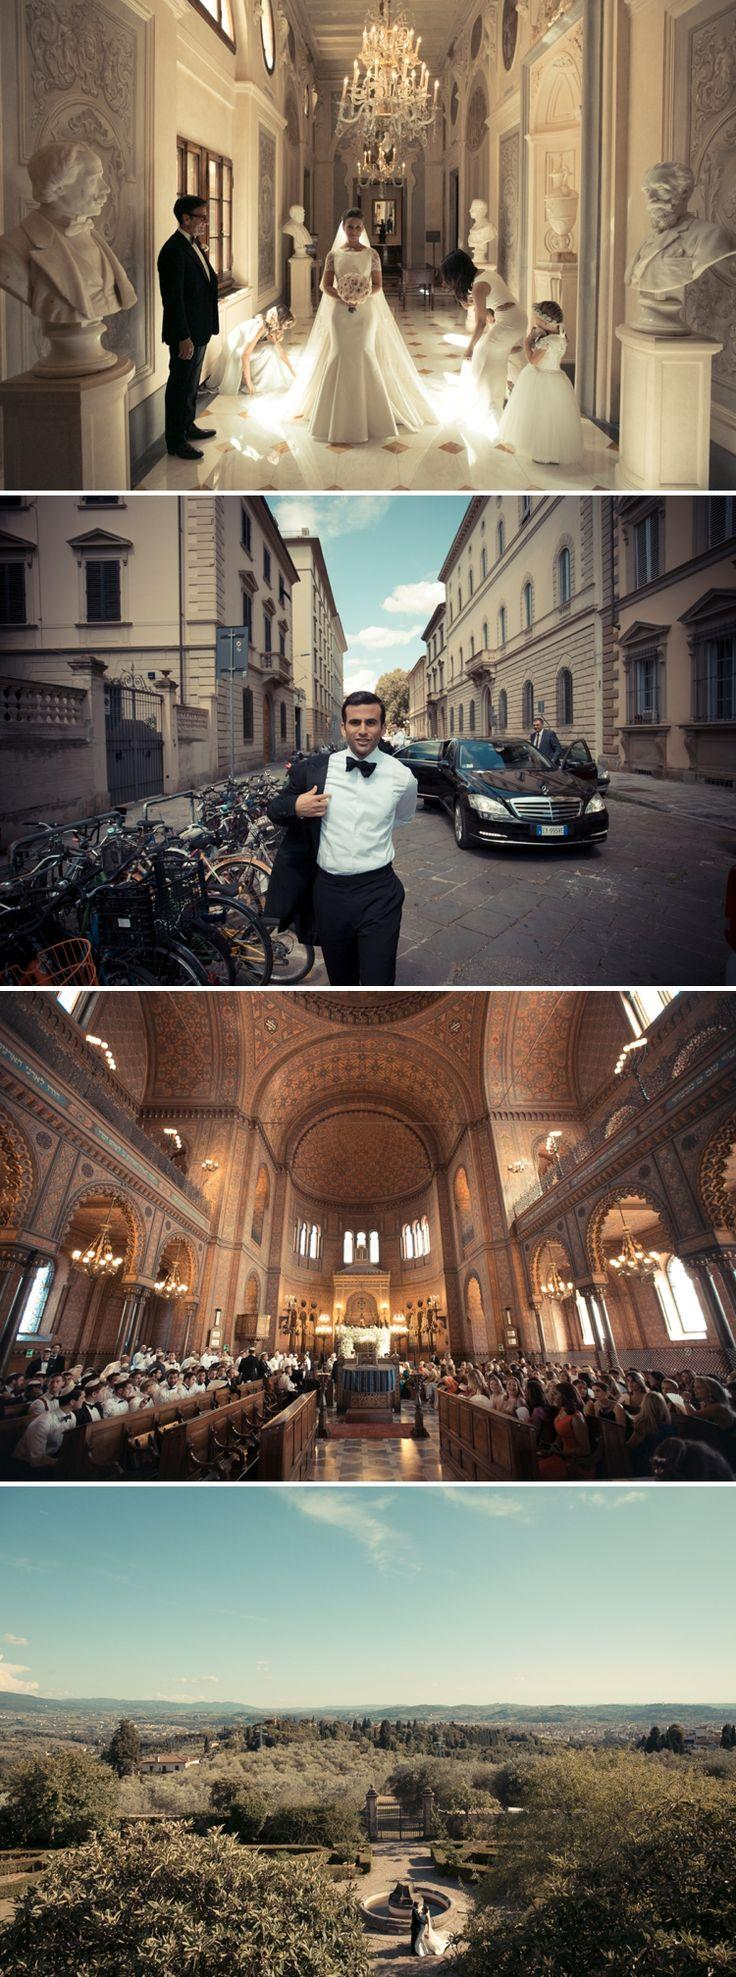 Свадьба - 'Old Hollywood' Destination Jewish Wedding At The Great Synagogue Of Florence And Villa Di Maiano, Florence, Italy - Smashing The Glass